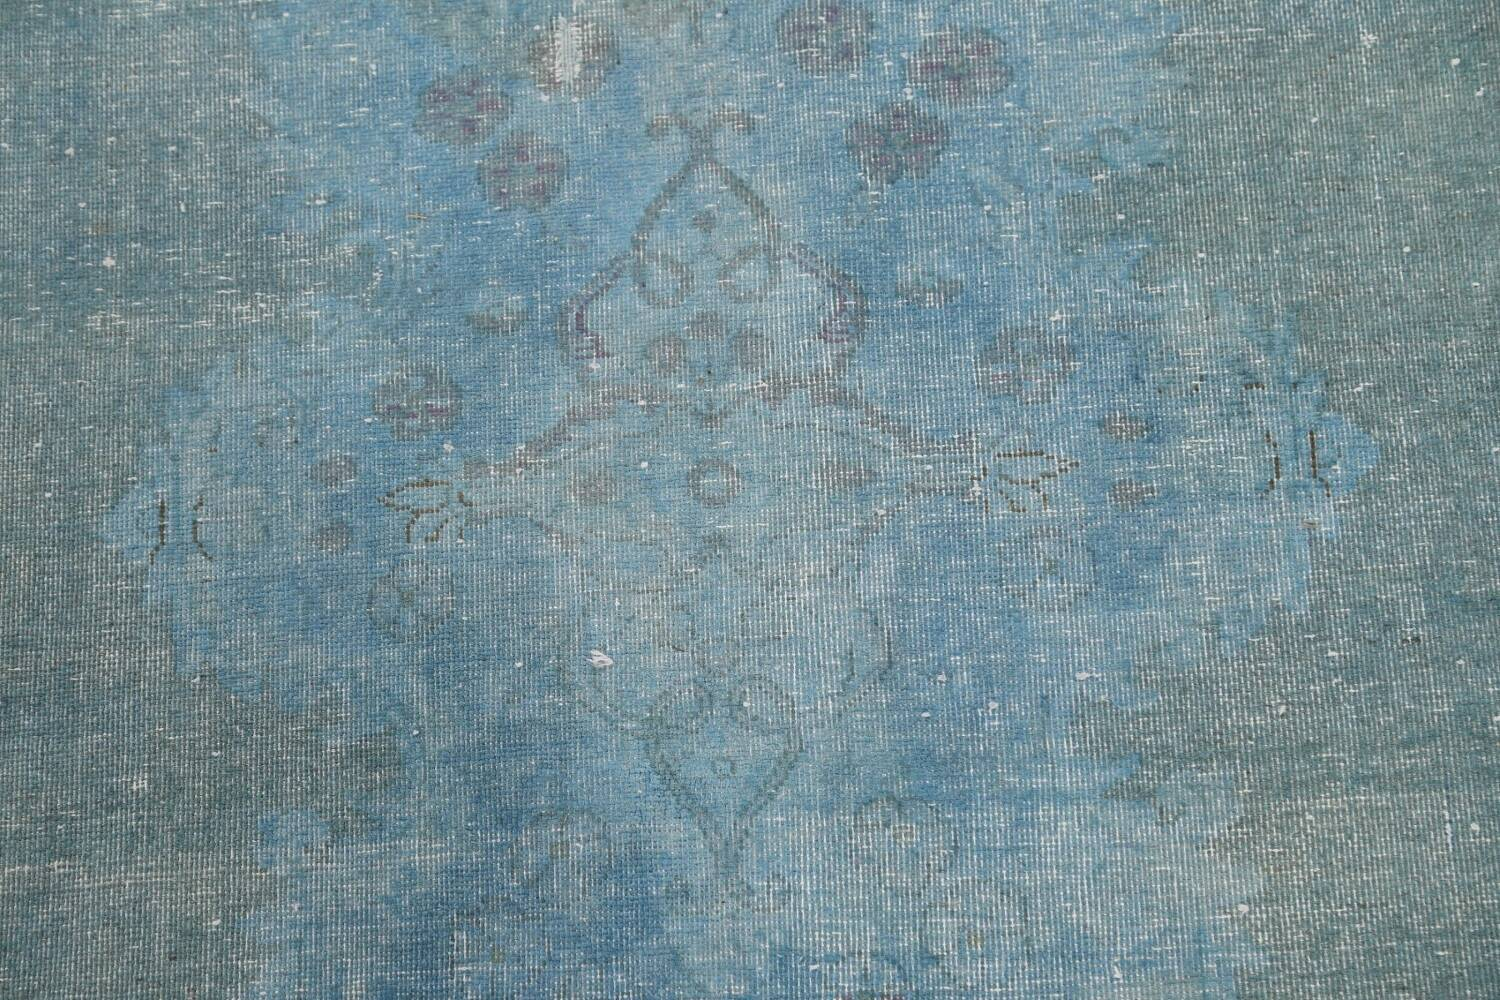 Distressed Over-dye Antique Kerman Persian Area Rug 7x9 image 10